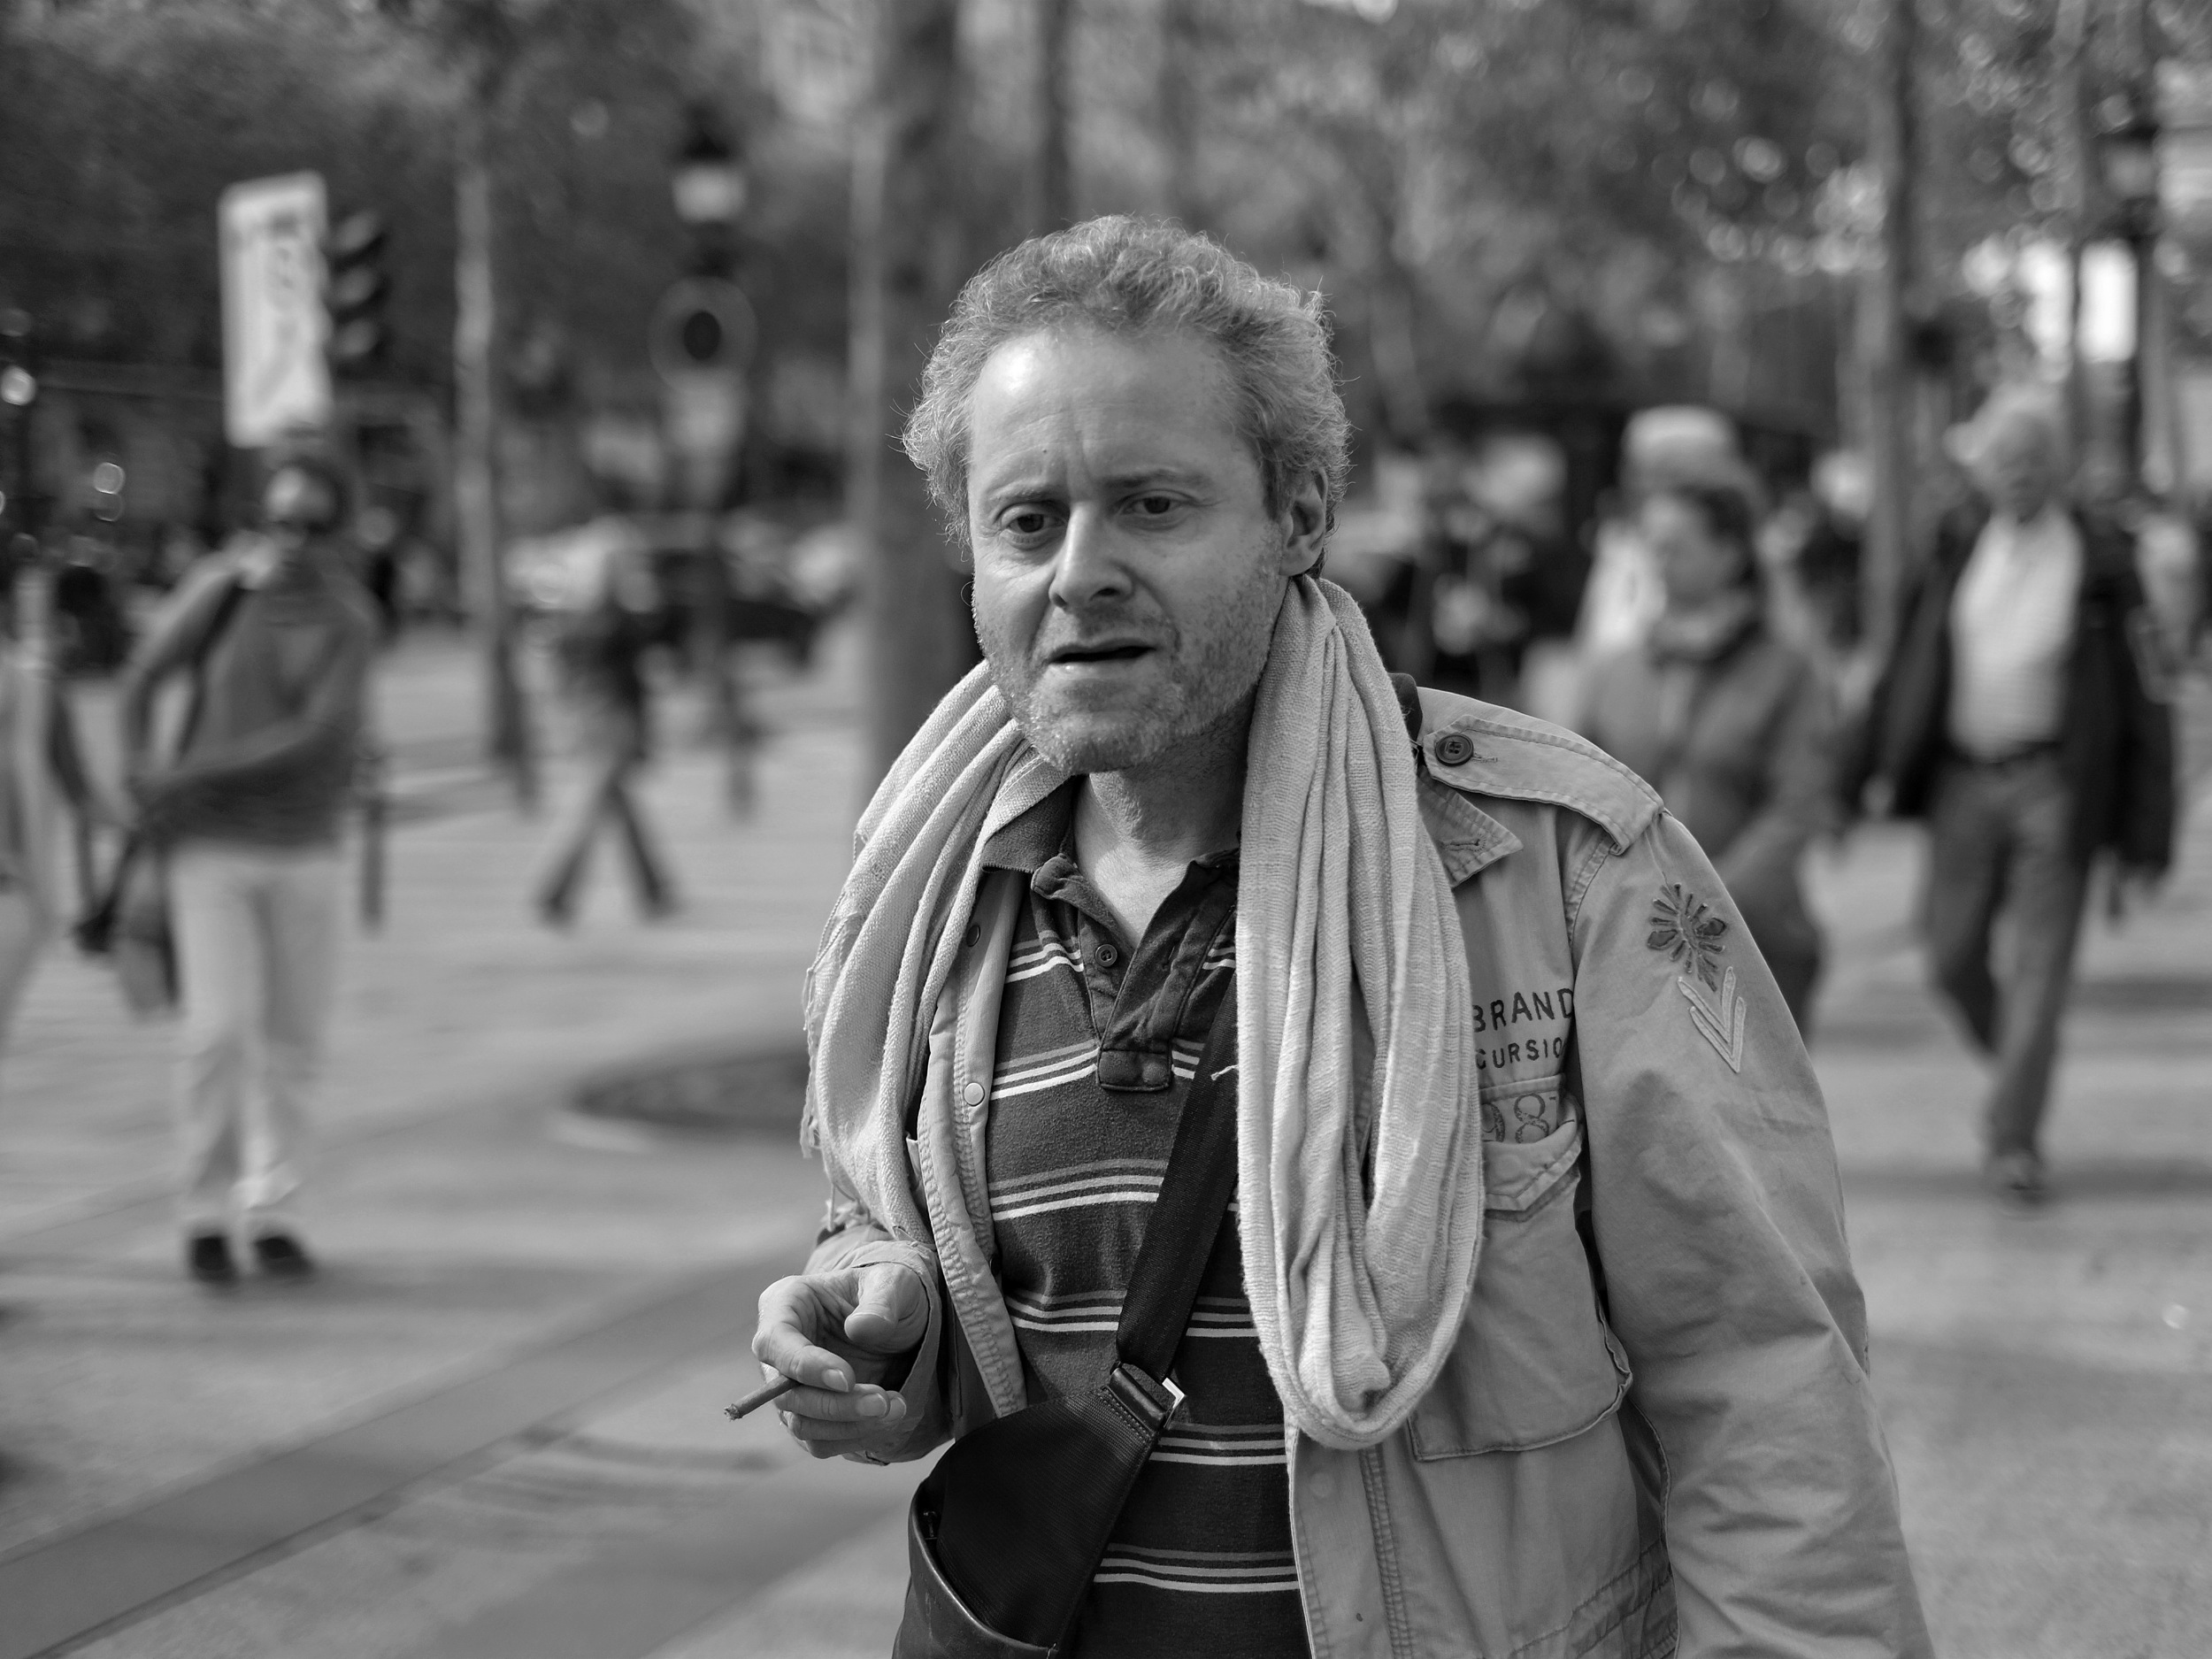 Man walking on the Champs Elysee, Paris - Fuji X-Pro1